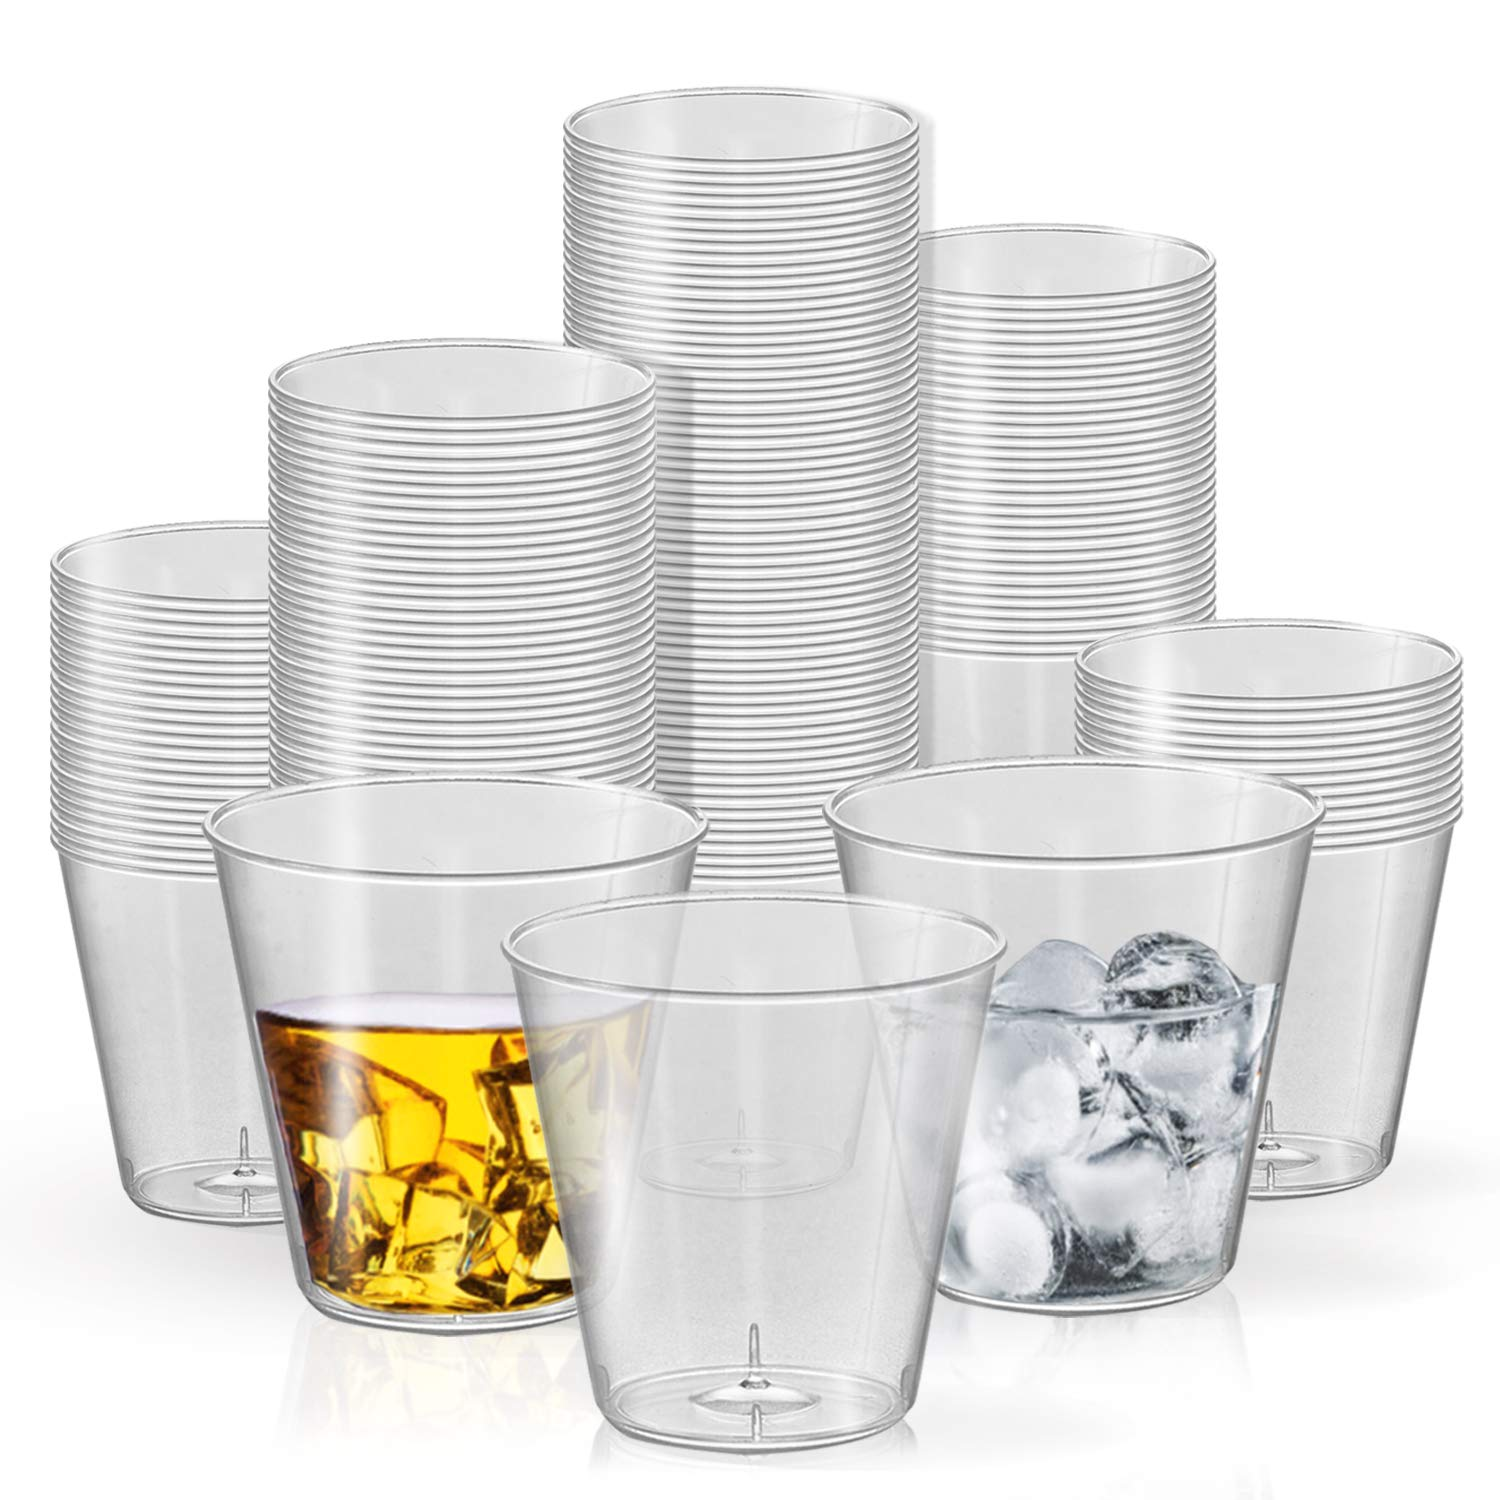 Disposable Plastic Shot Glasses - 2500 Pcs Hard Plastic Clear Shot Glasses - 1 oz Punch Cups - Bulk Party Cup Supplies - Cocktail Drinking Party Cups for Weddings, Birthday Parties & Other Occasions by Kaya Collection